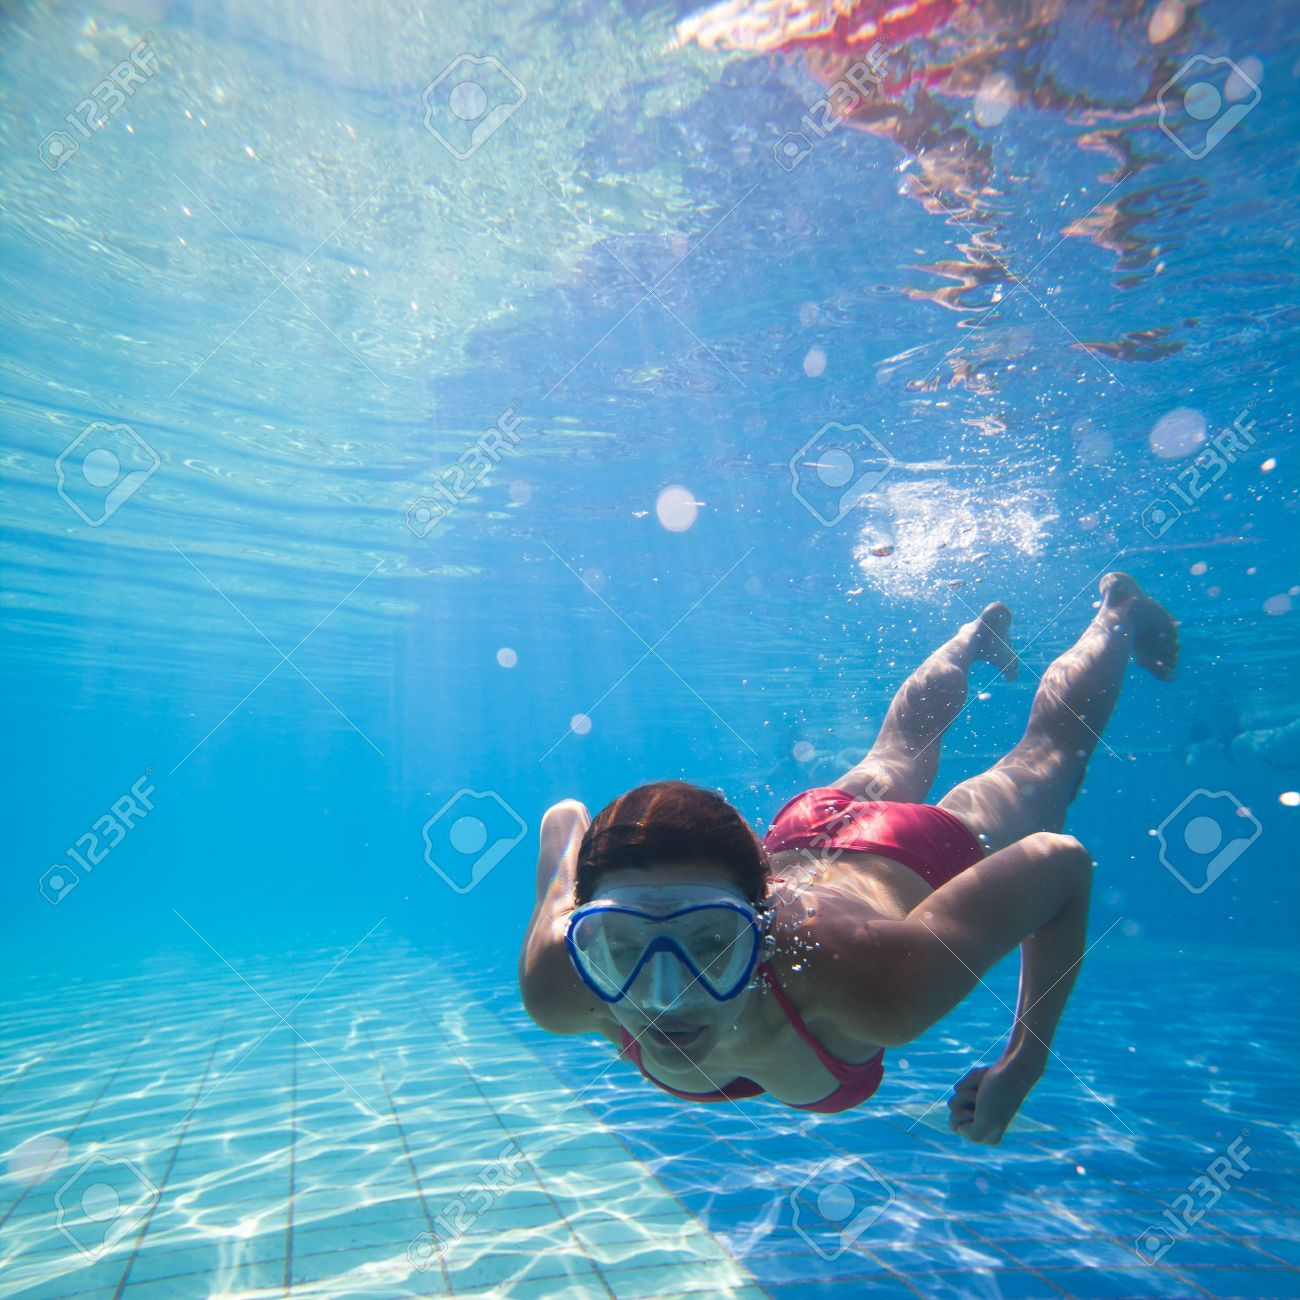 Underwater swimming: young woman swimming underwater in a pool, wearing a diving mask Stock Photo - 14196630